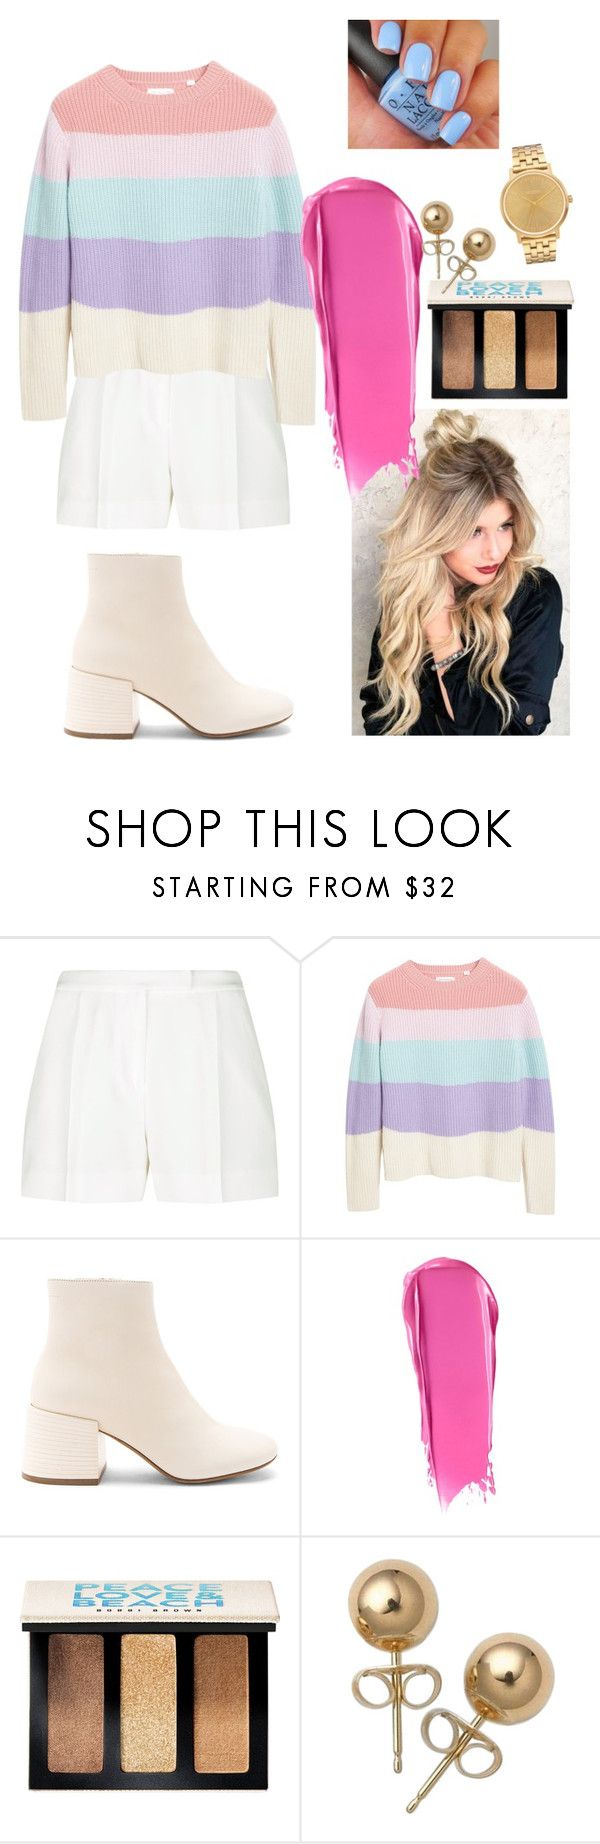 """""""Untitled #219"""" by jolilollie on Polyvore featuring Elie Saab, Chinti and Parker, MM6 Maison Margiela, Liberty, Bobbi Brown Cosmetics, Bling Jewelry and Nixon"""